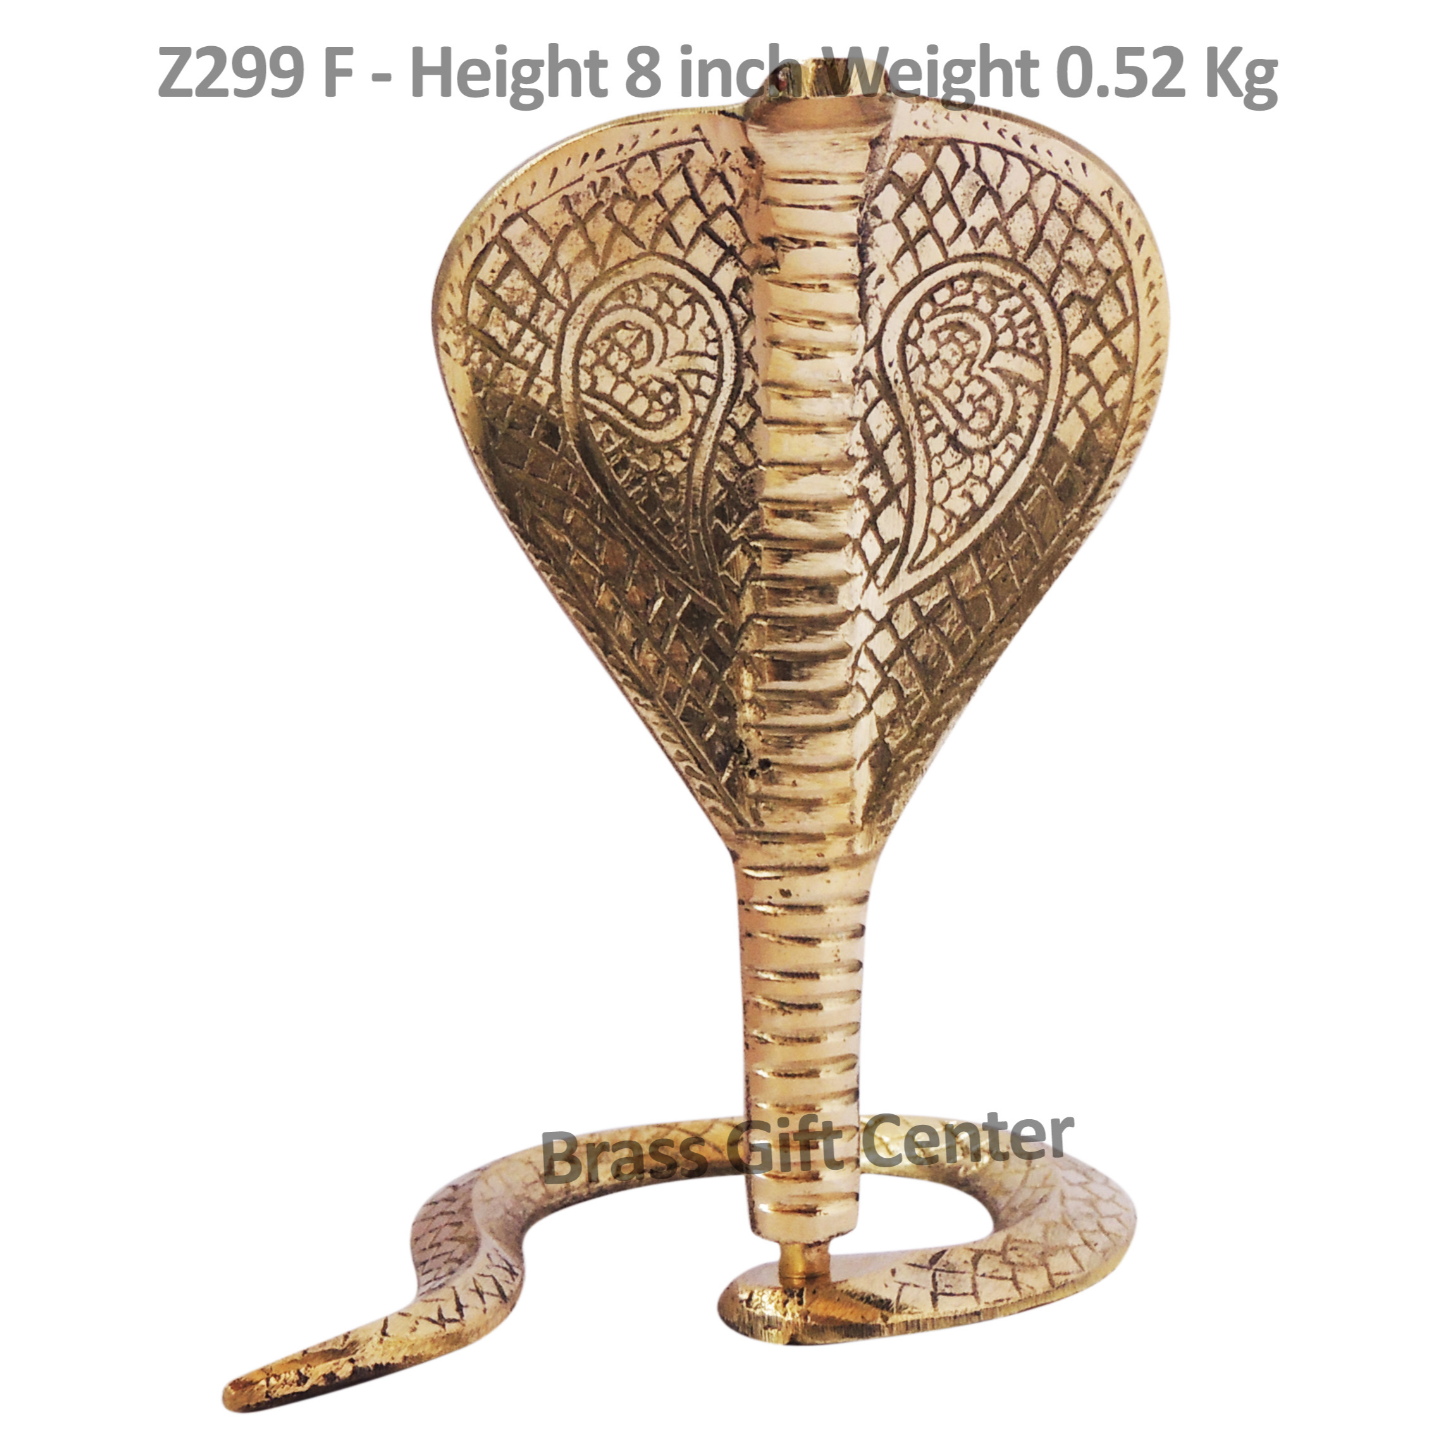 Brass Snake Saap For Shivling With Brass Finish, Height 8 Inch Z299 F